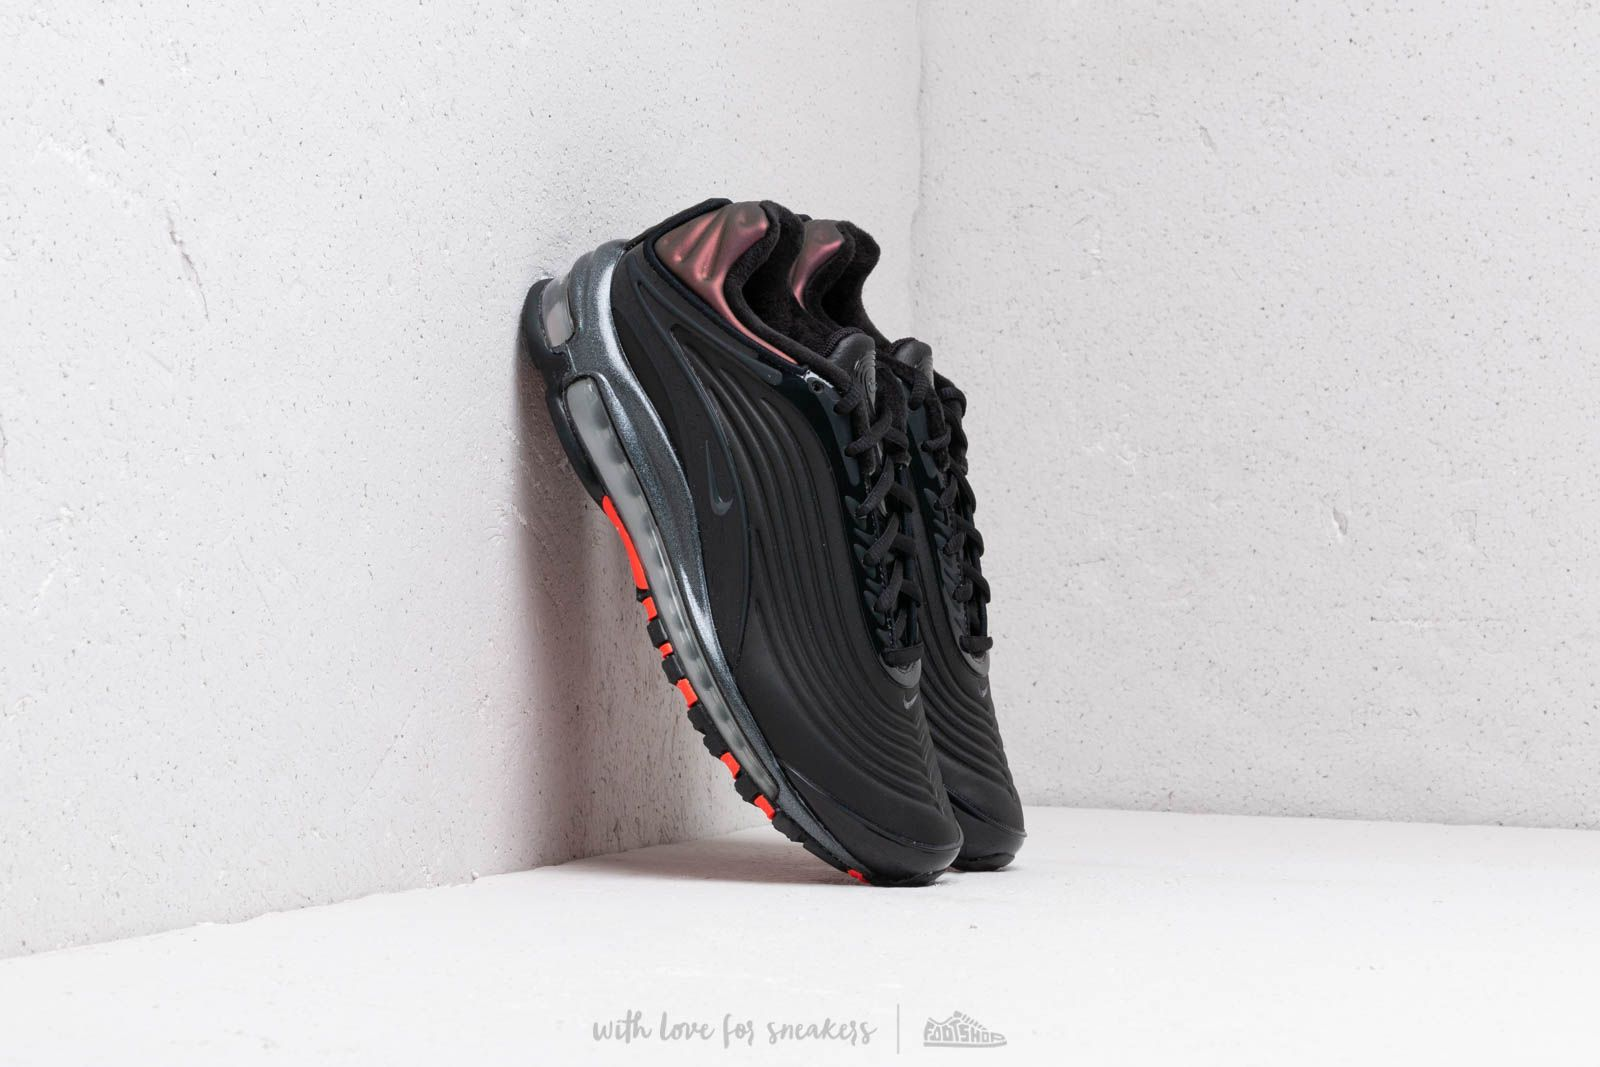 Nike Air Max Deluxe SE BlackAnthracite Bright Crimson AO8284 001